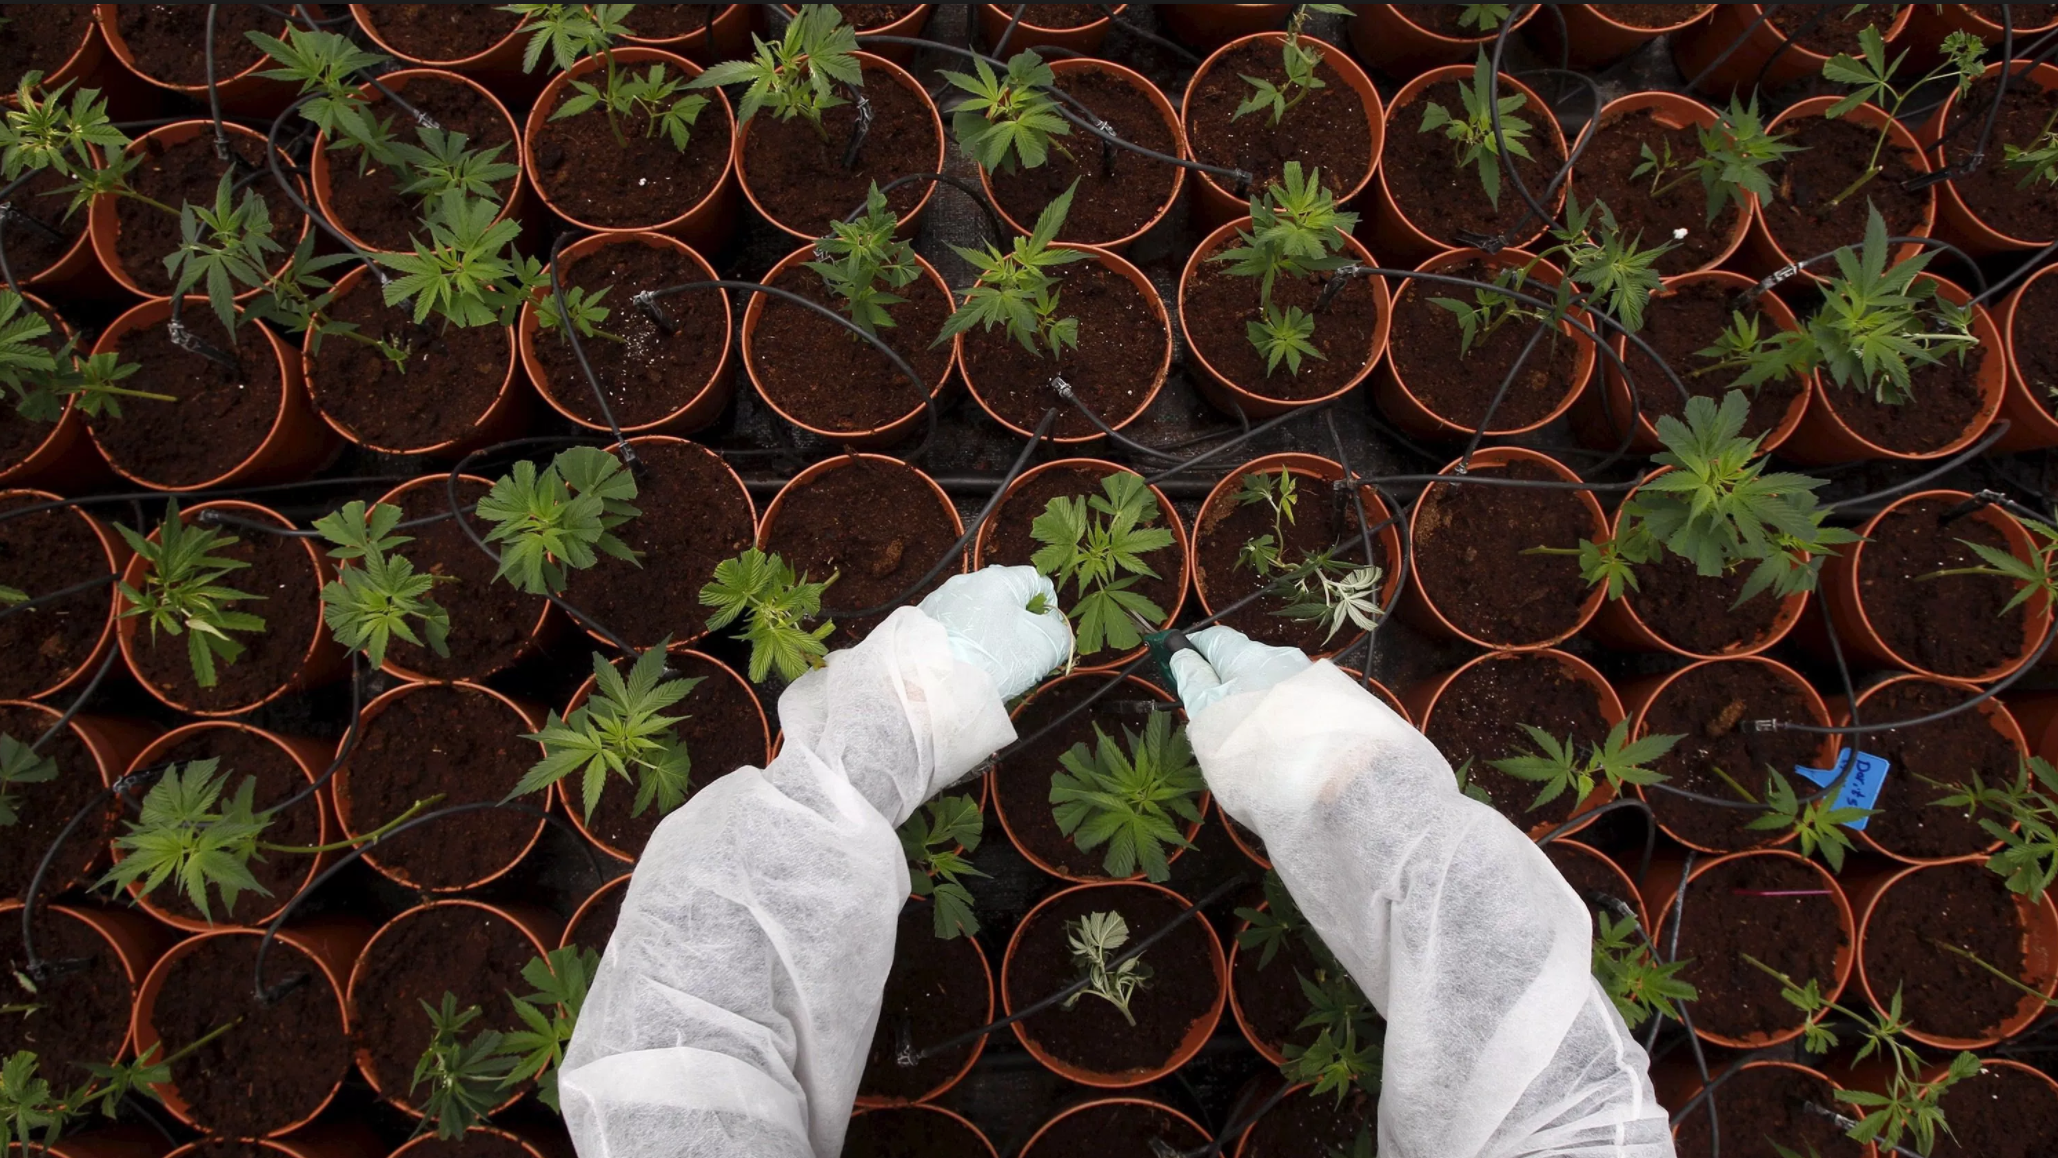 Dutch coalition testing controlled cannabis cultivation